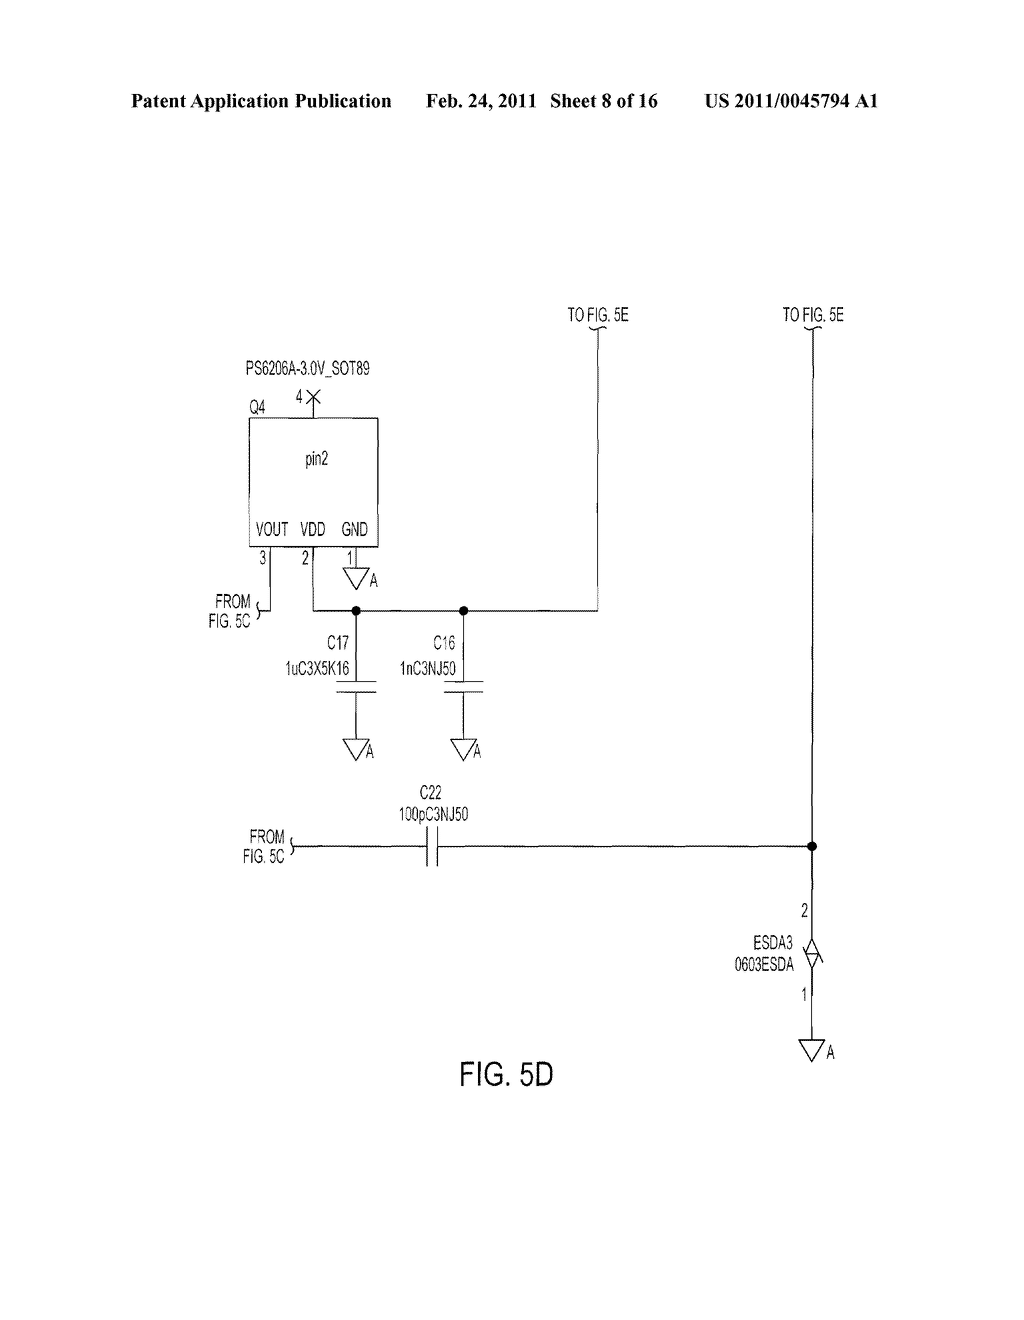 DOCKING UNIT AND VEHICLE POWER ADAPTER WITH FREQUENCY MODULATED AUDIO SIGNAL INJECTION FOR CONNECTING PORTABLE MEDIA PLAYER AND/OR COMMUNICATIONS DEVICE TO VEHICLE FM RADIO AND AUDIO SYSTEM FOR PLAYBACK OF DIGITAL AUDIO BROADCAST STREAM - diagram, schematic, and image 09